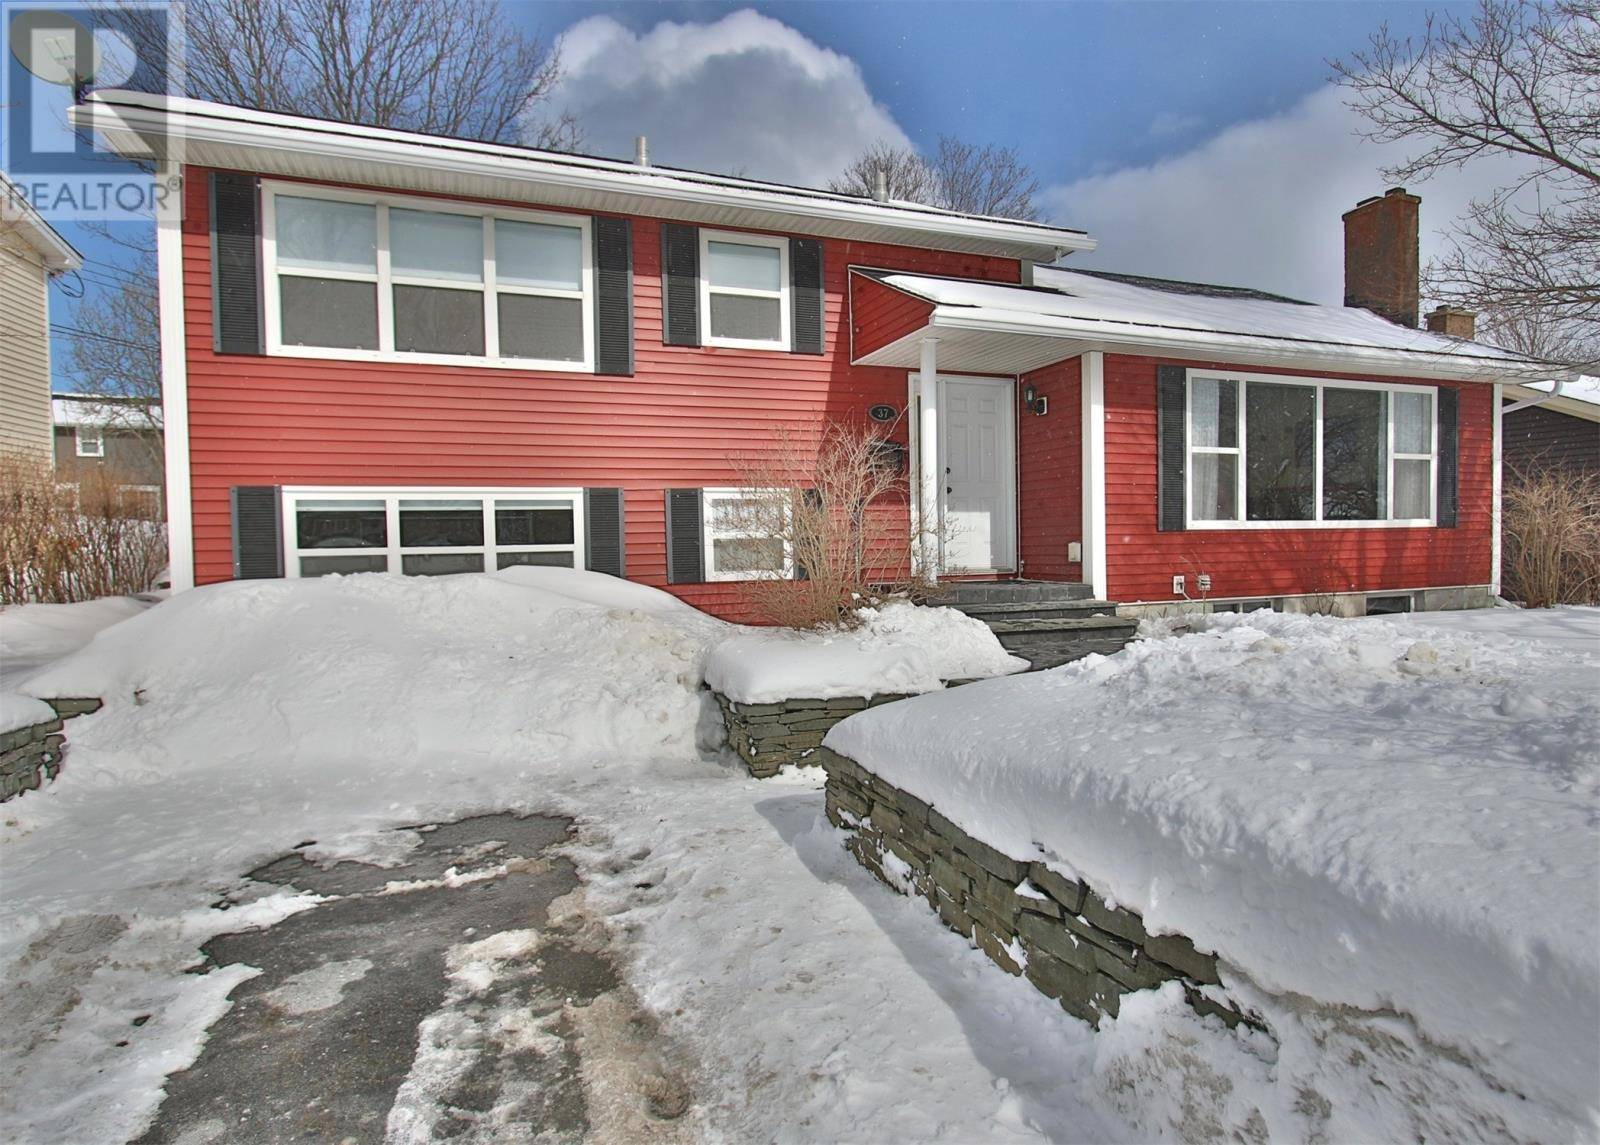 House for sale at 37 Smithville Cres St. John's Newfoundland - MLS: 1211561